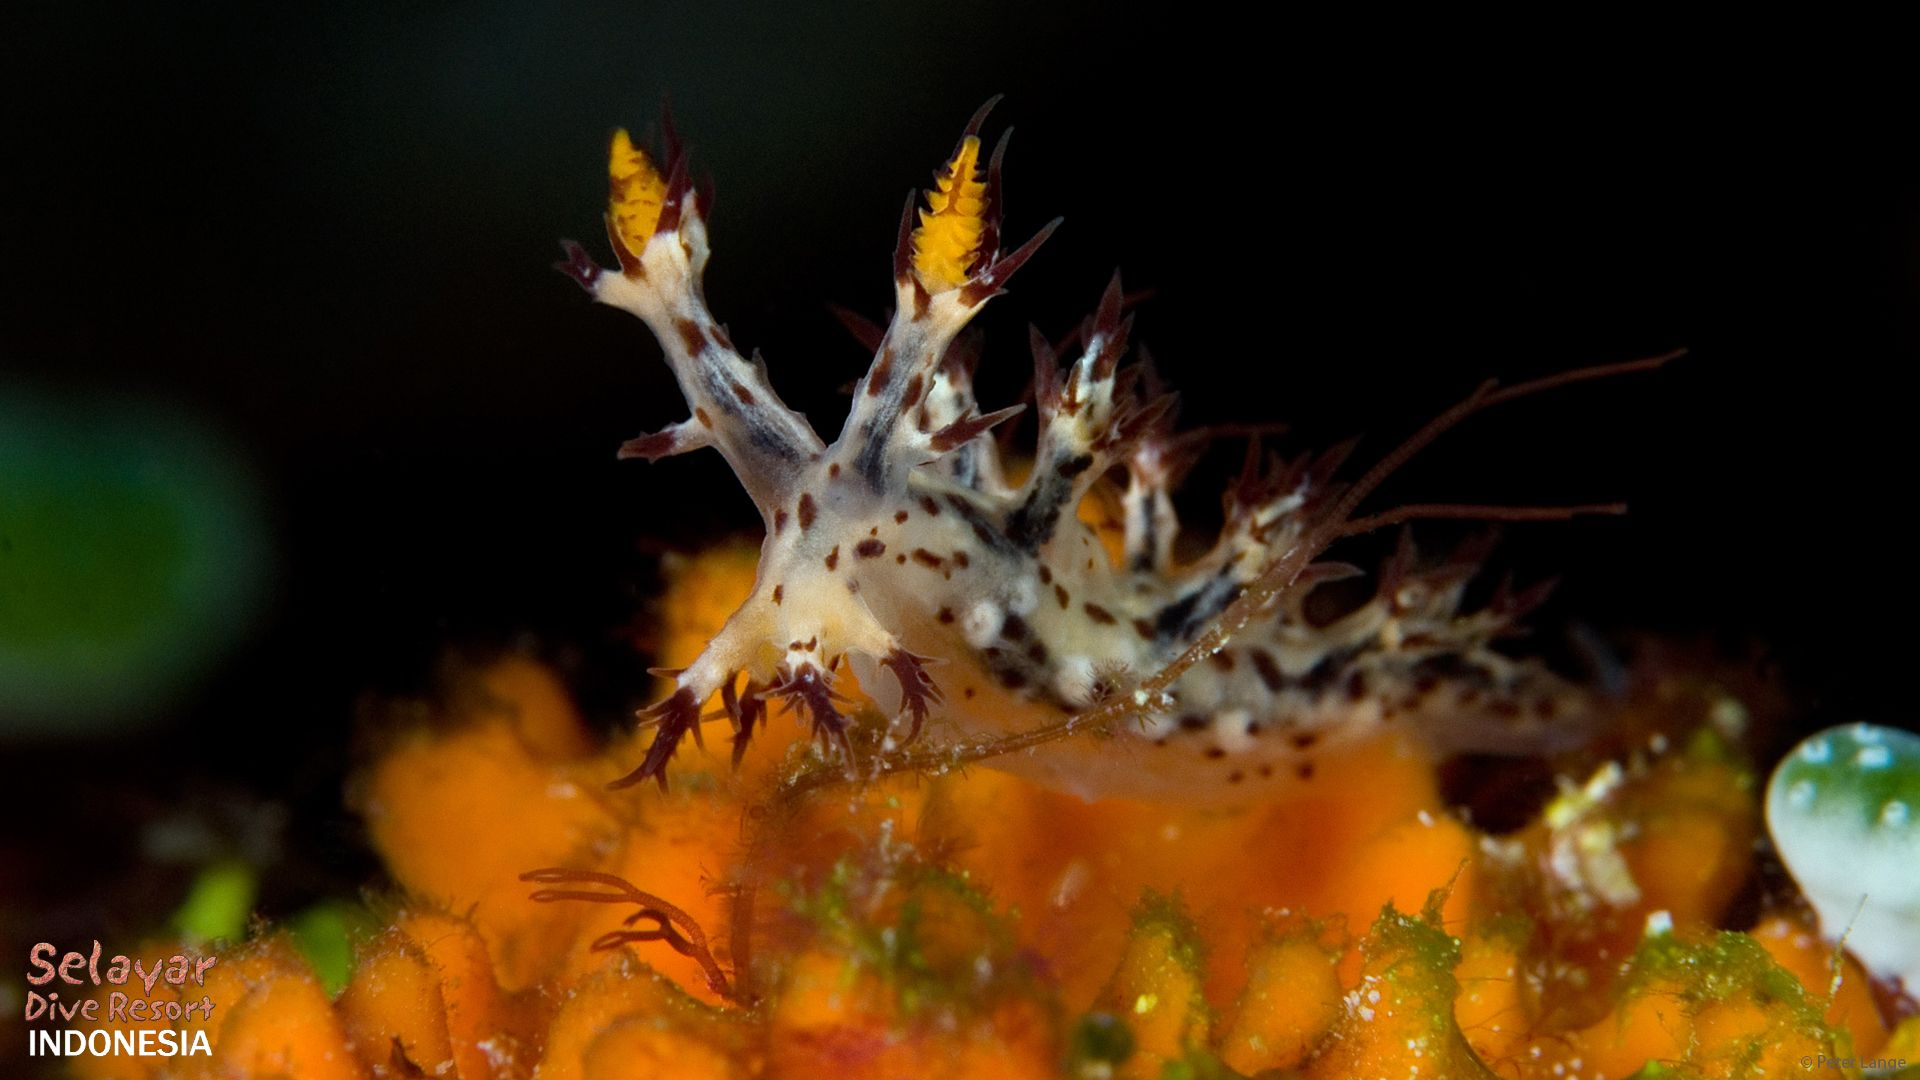 Nudibranch diving Indonesia dendronotinae